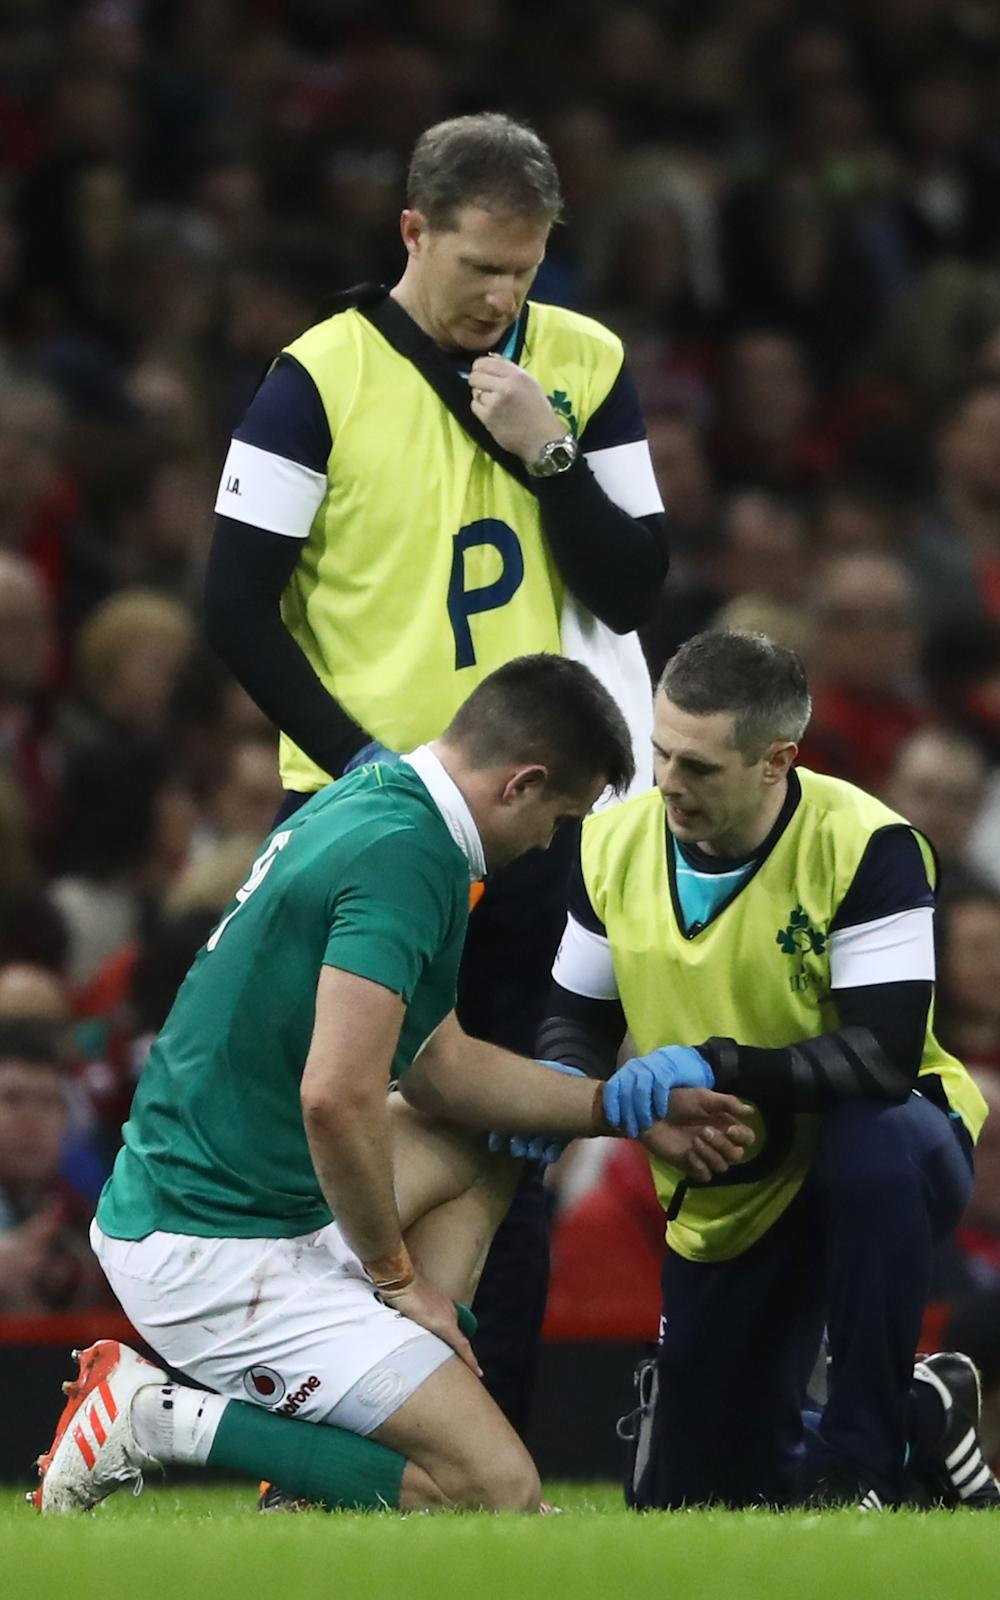 Conor Murray - Credit: GETTY IMAGES